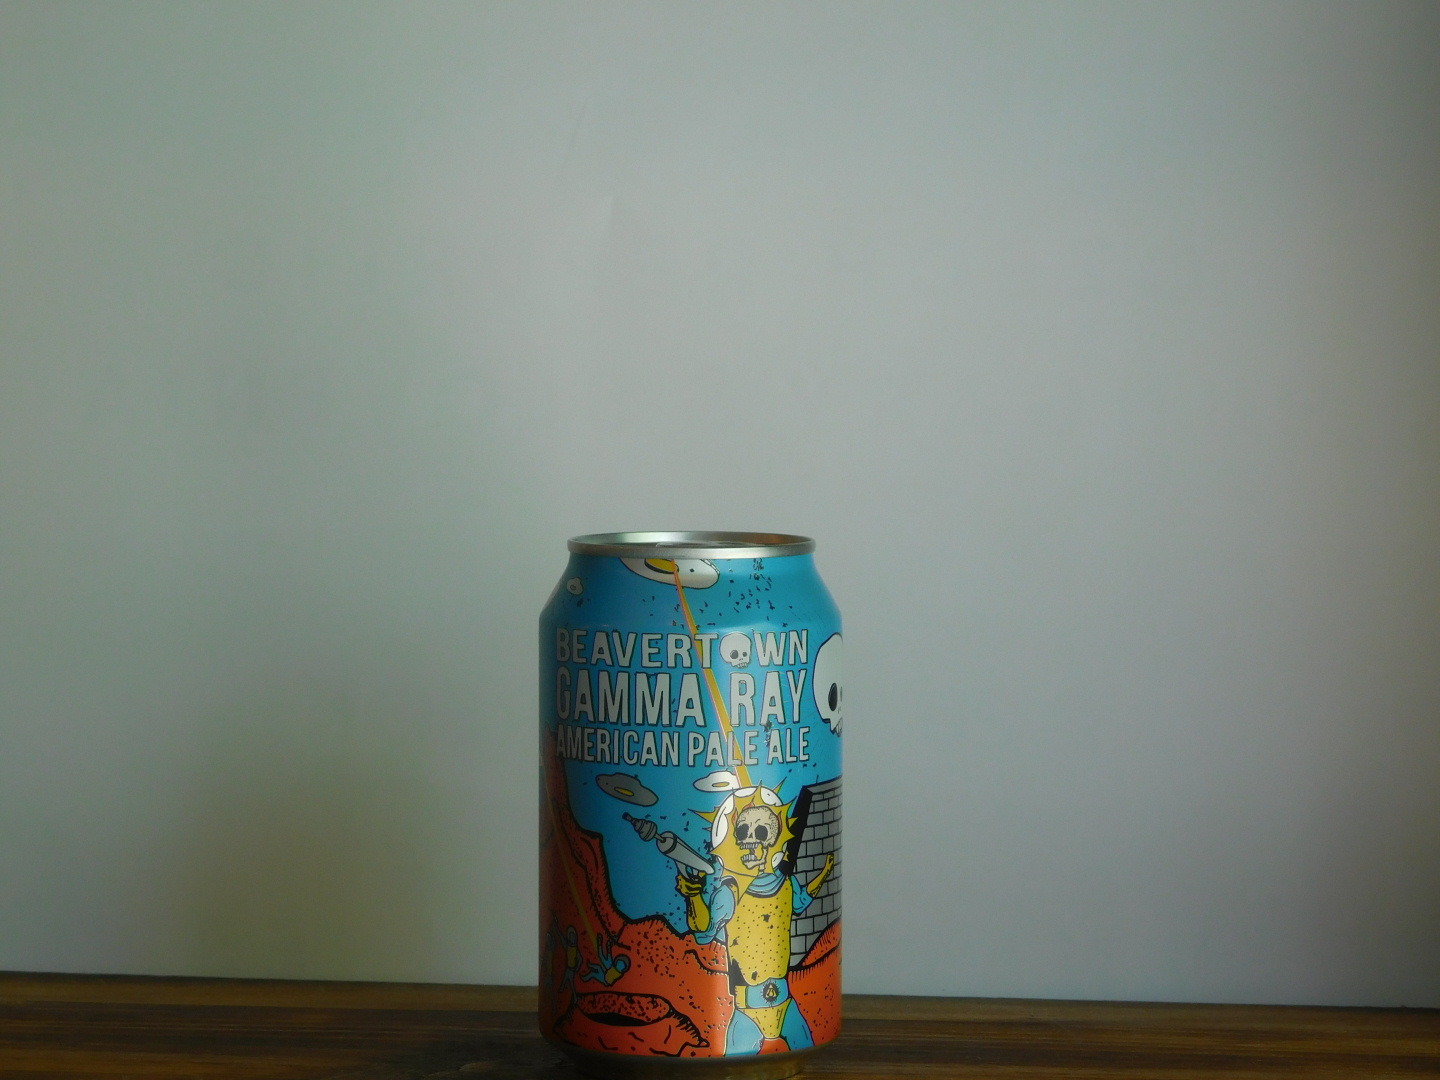 Beavertown gamma ray 6 Pack